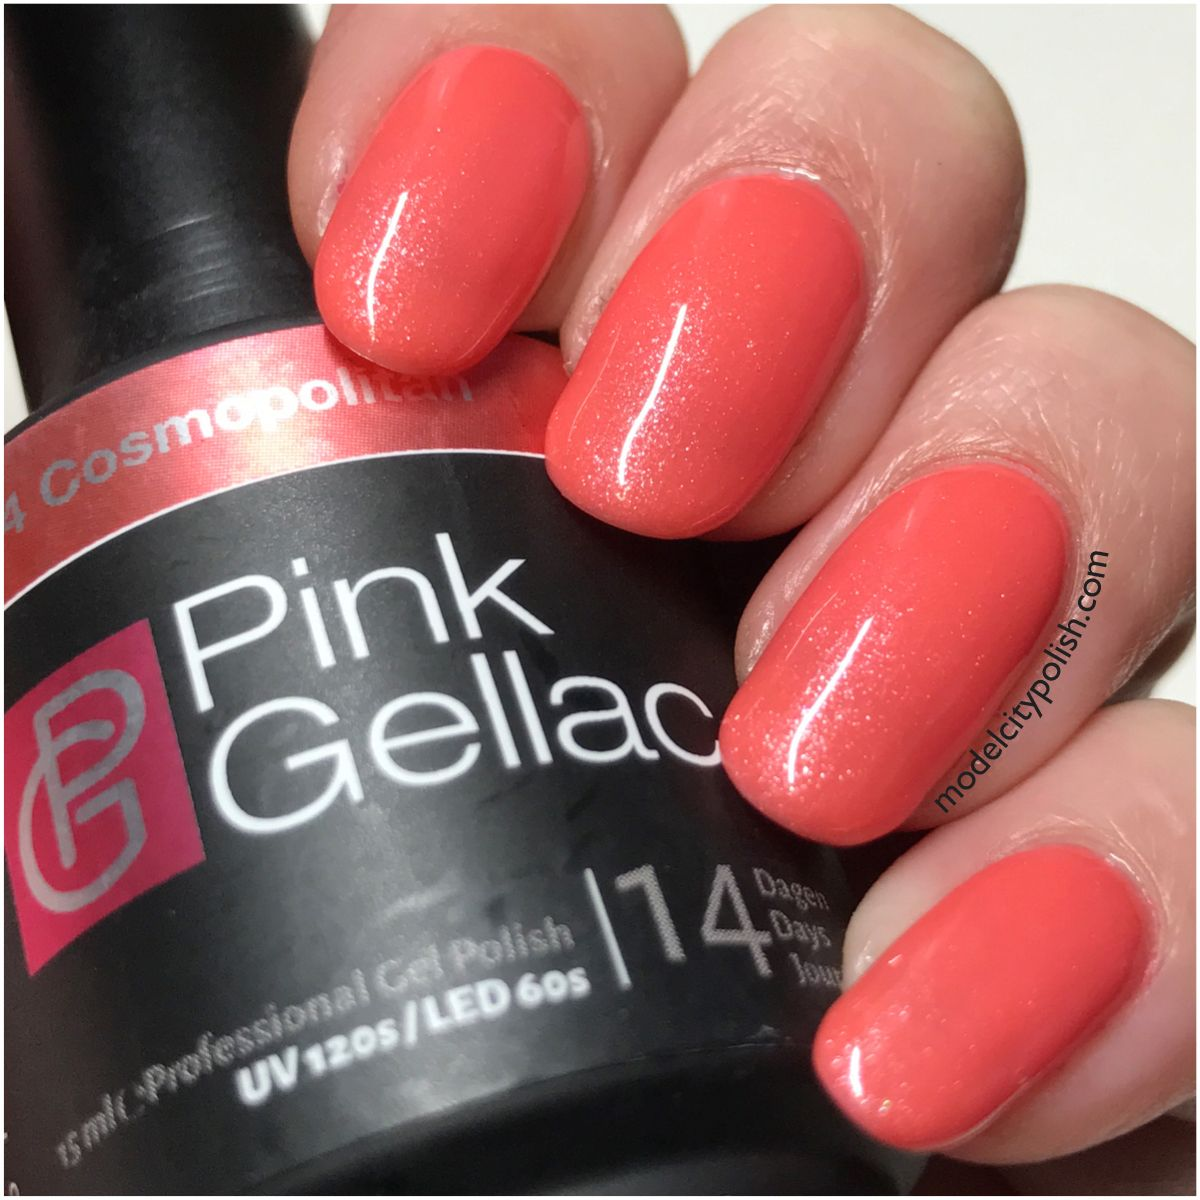 Cosmopolitan From Candy Couture By Pink Gellac Model City Polish Colorful Nail Designs Nail Designs Nail Colors